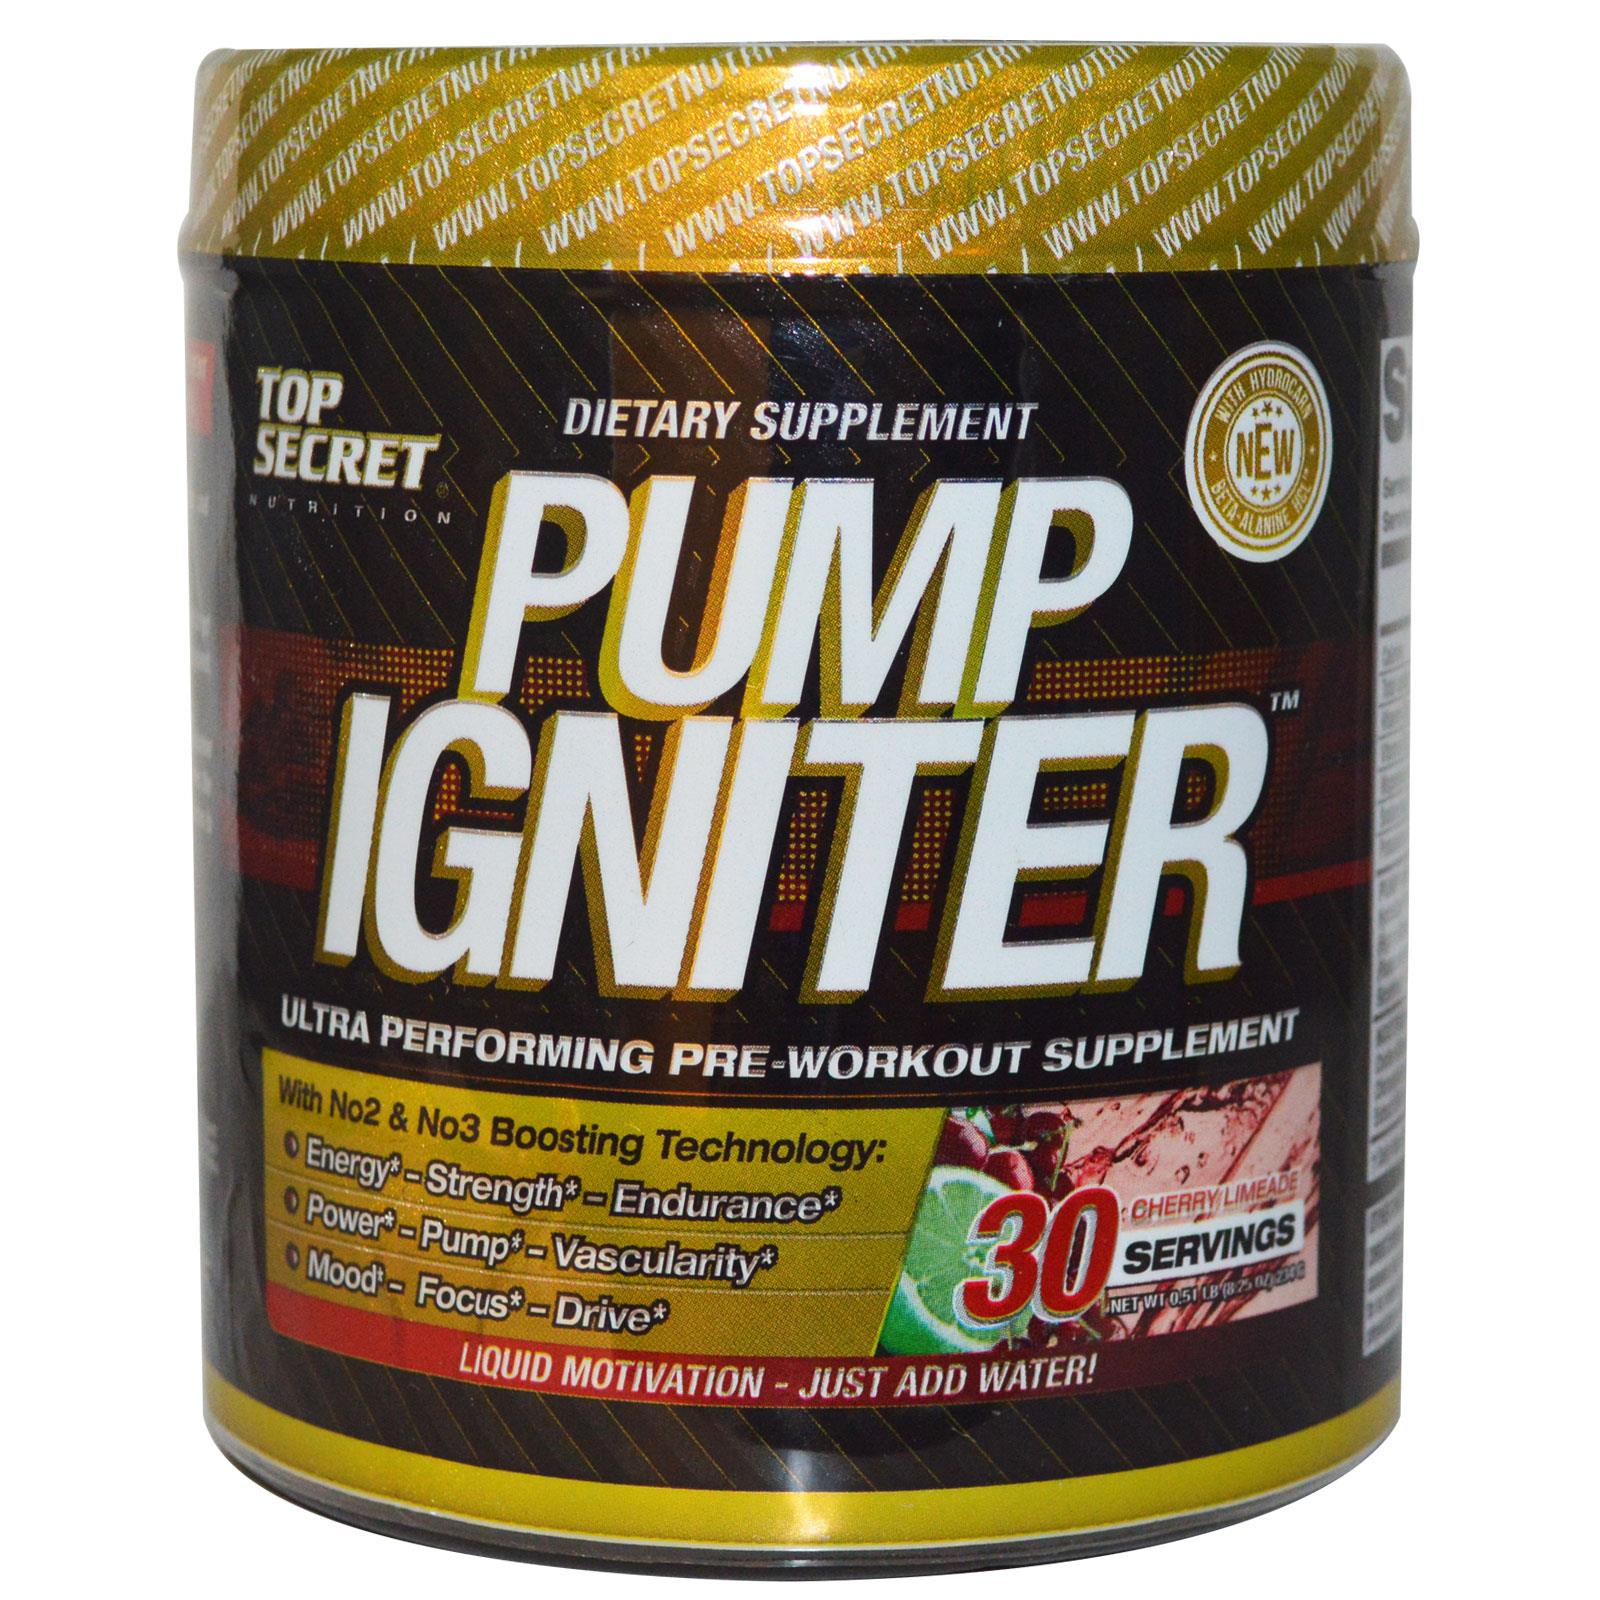 TOP SECRET NUTRITION PUMP IGNITER